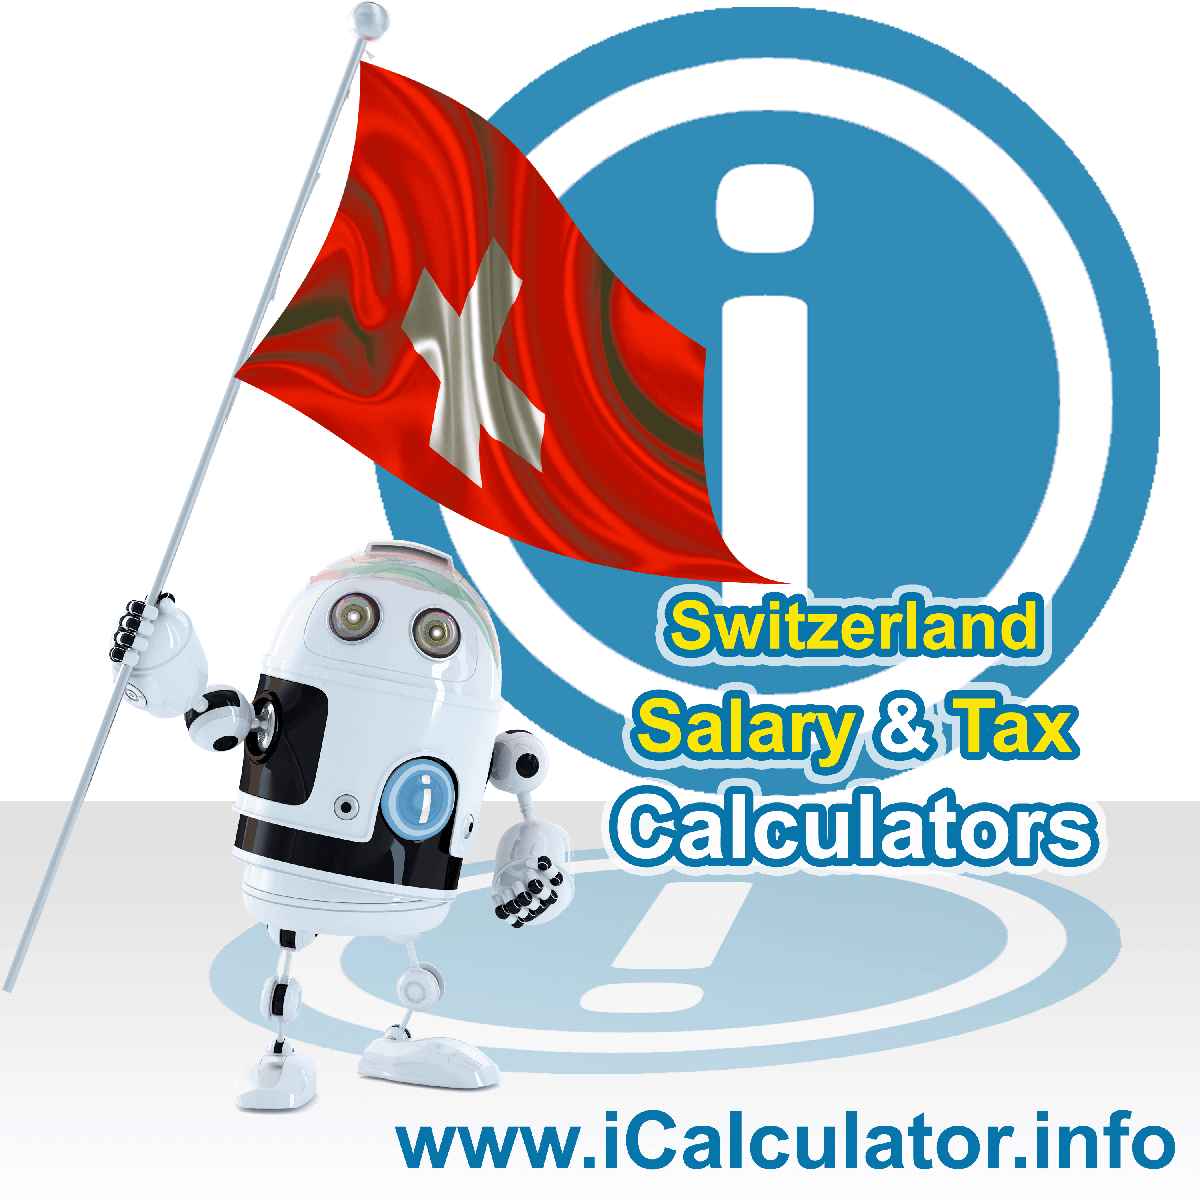 Switzerland Wage Calculator. This image shows the Switzerland flag and information relating to the tax formula for the Switzerland Tax Calculator